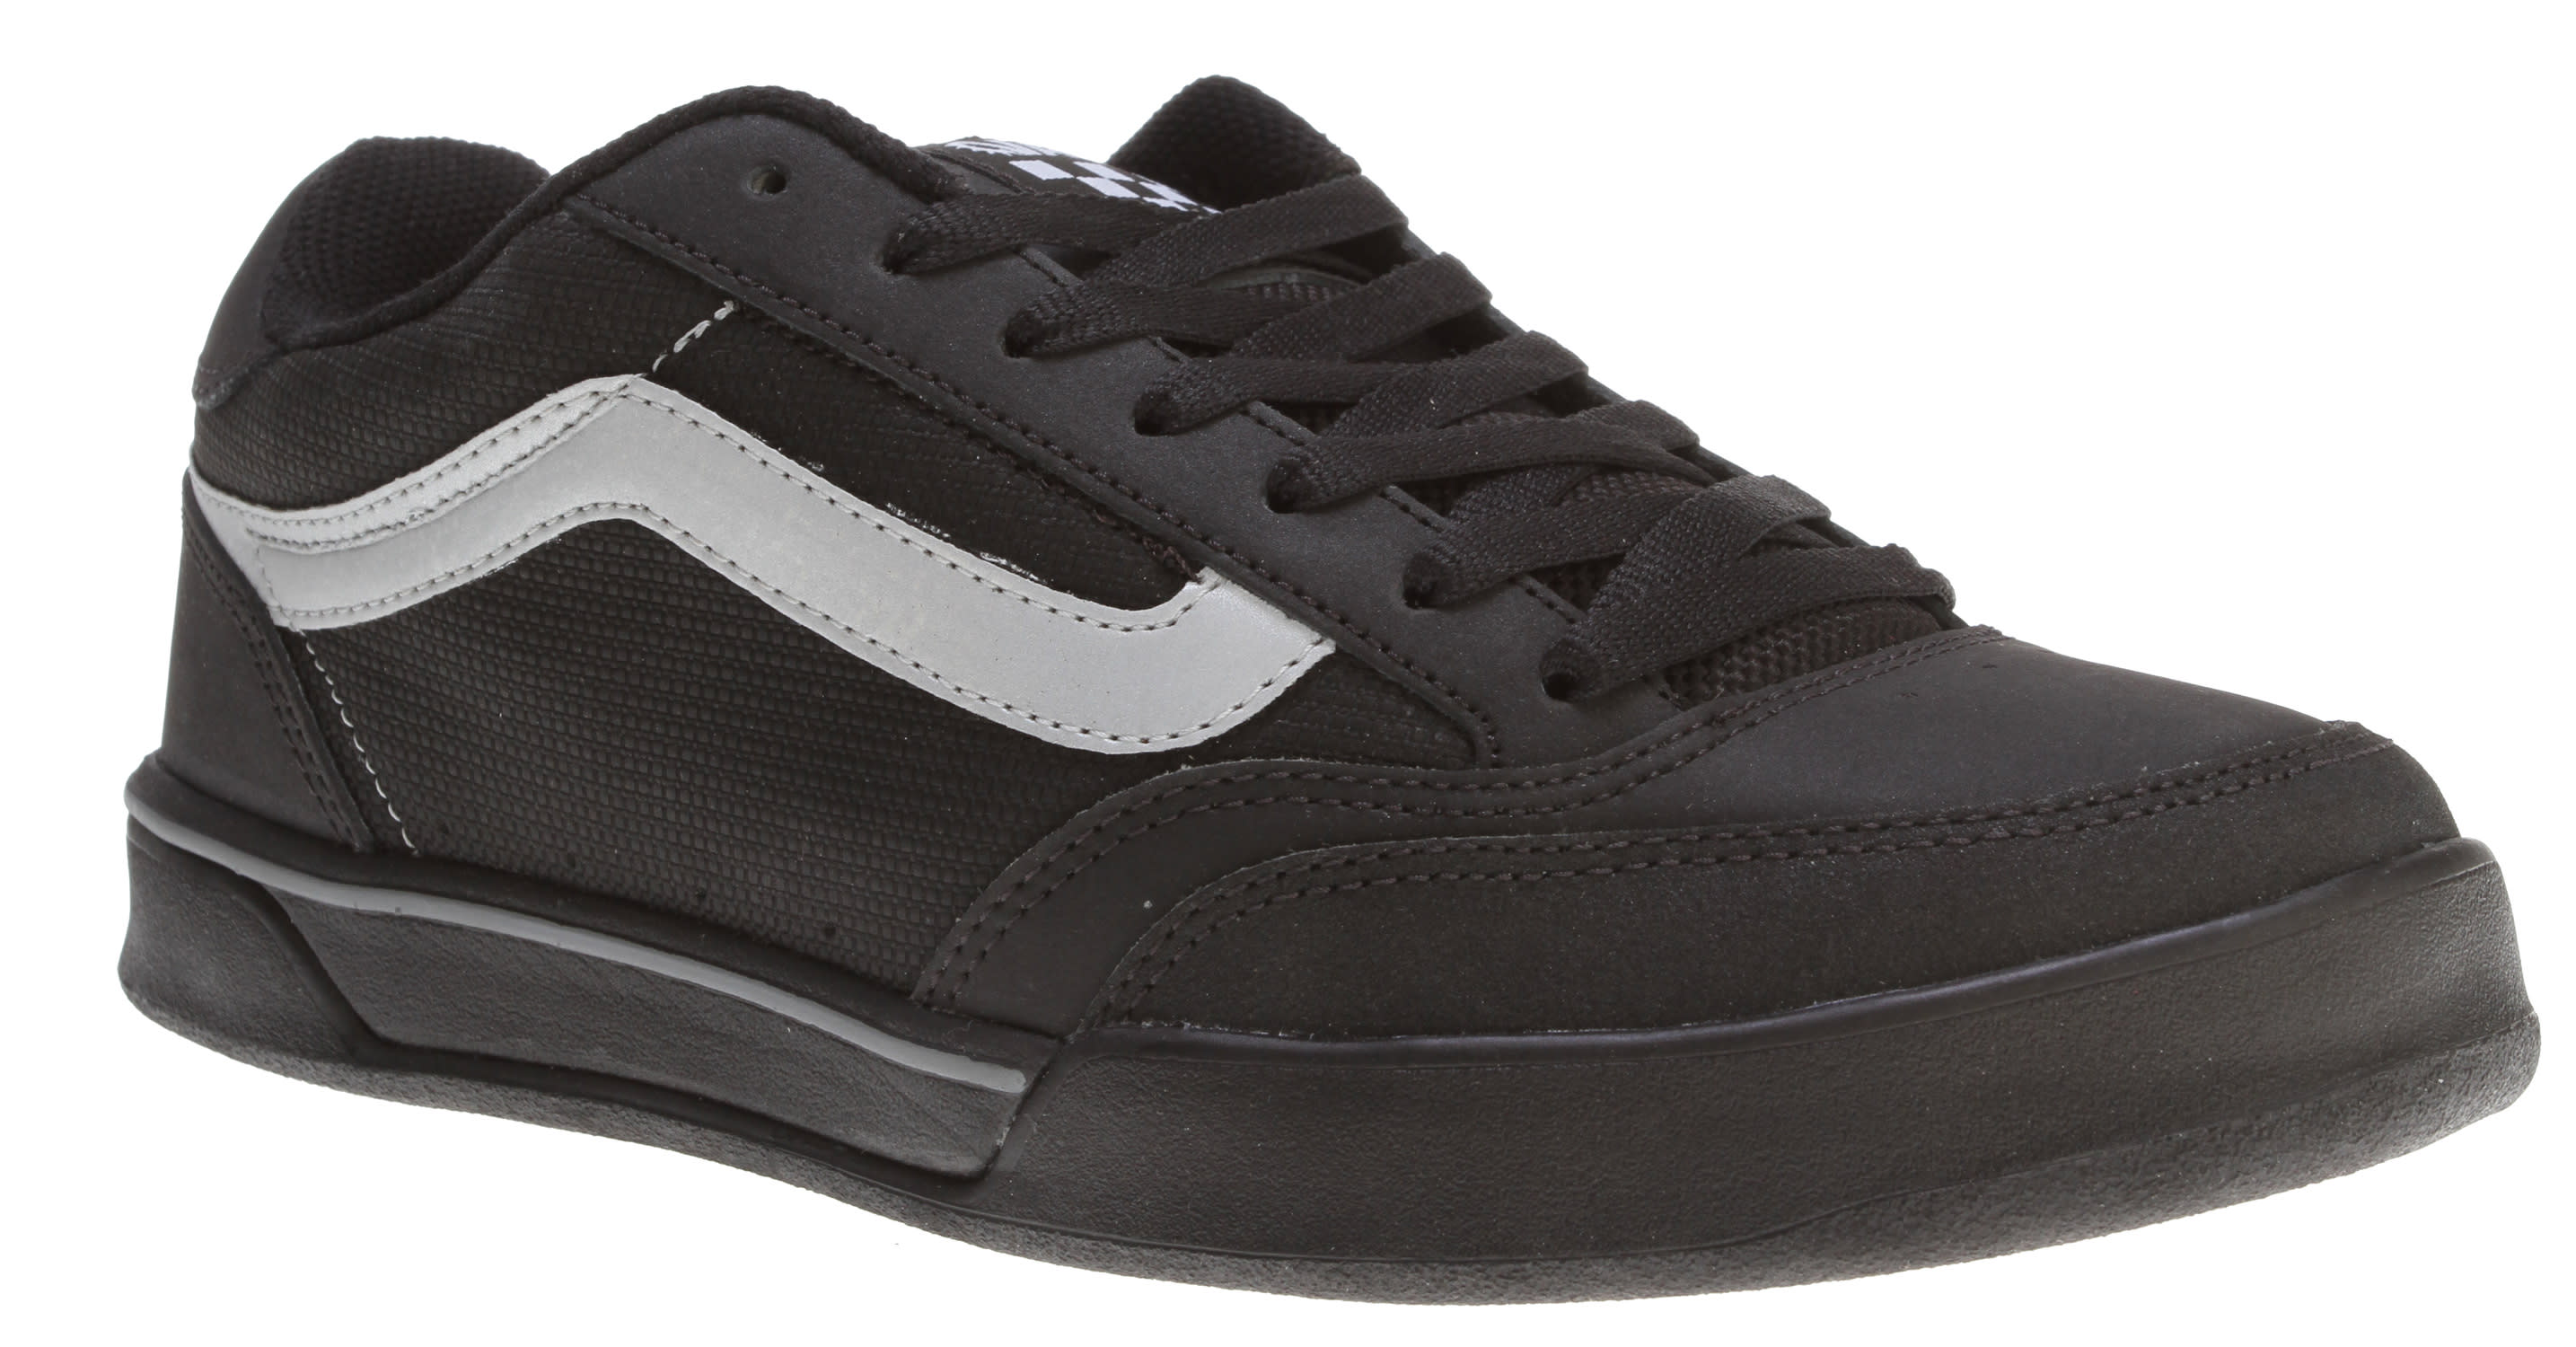 Wakeboards For Sale >> On Sale Vans Gravel Bike Shoes up to 65% off